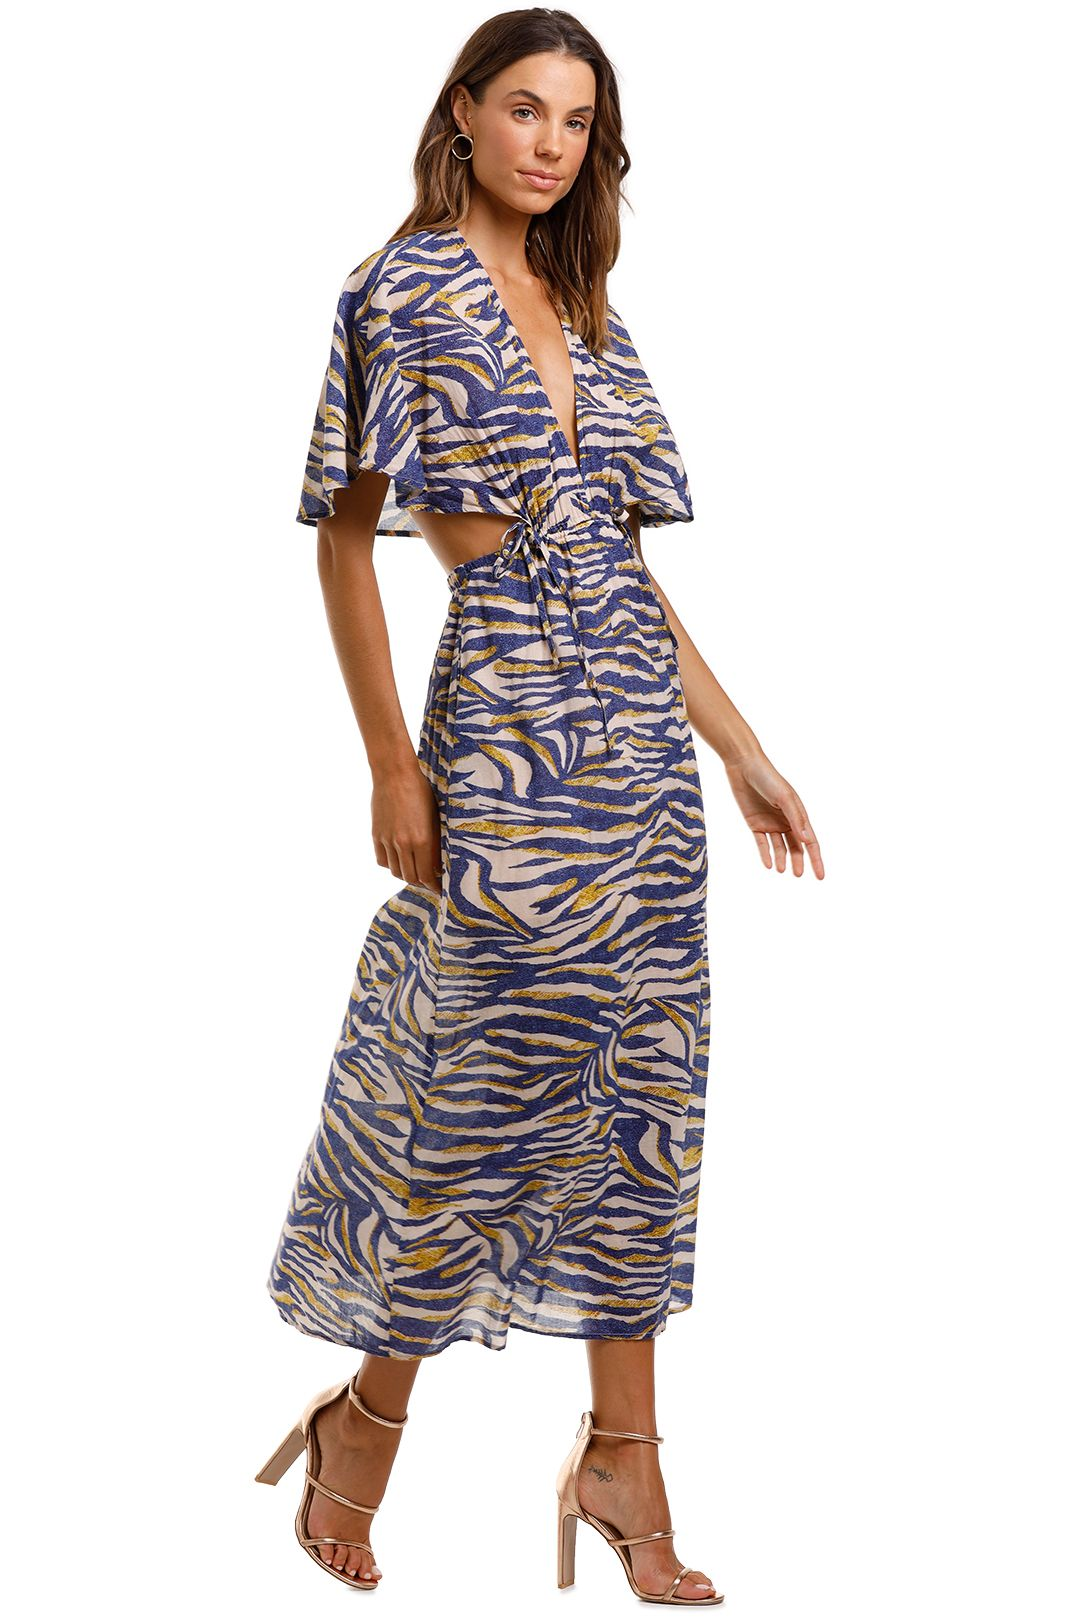 Suboo Into The Wilds Cape Dress Animal Print Maxi